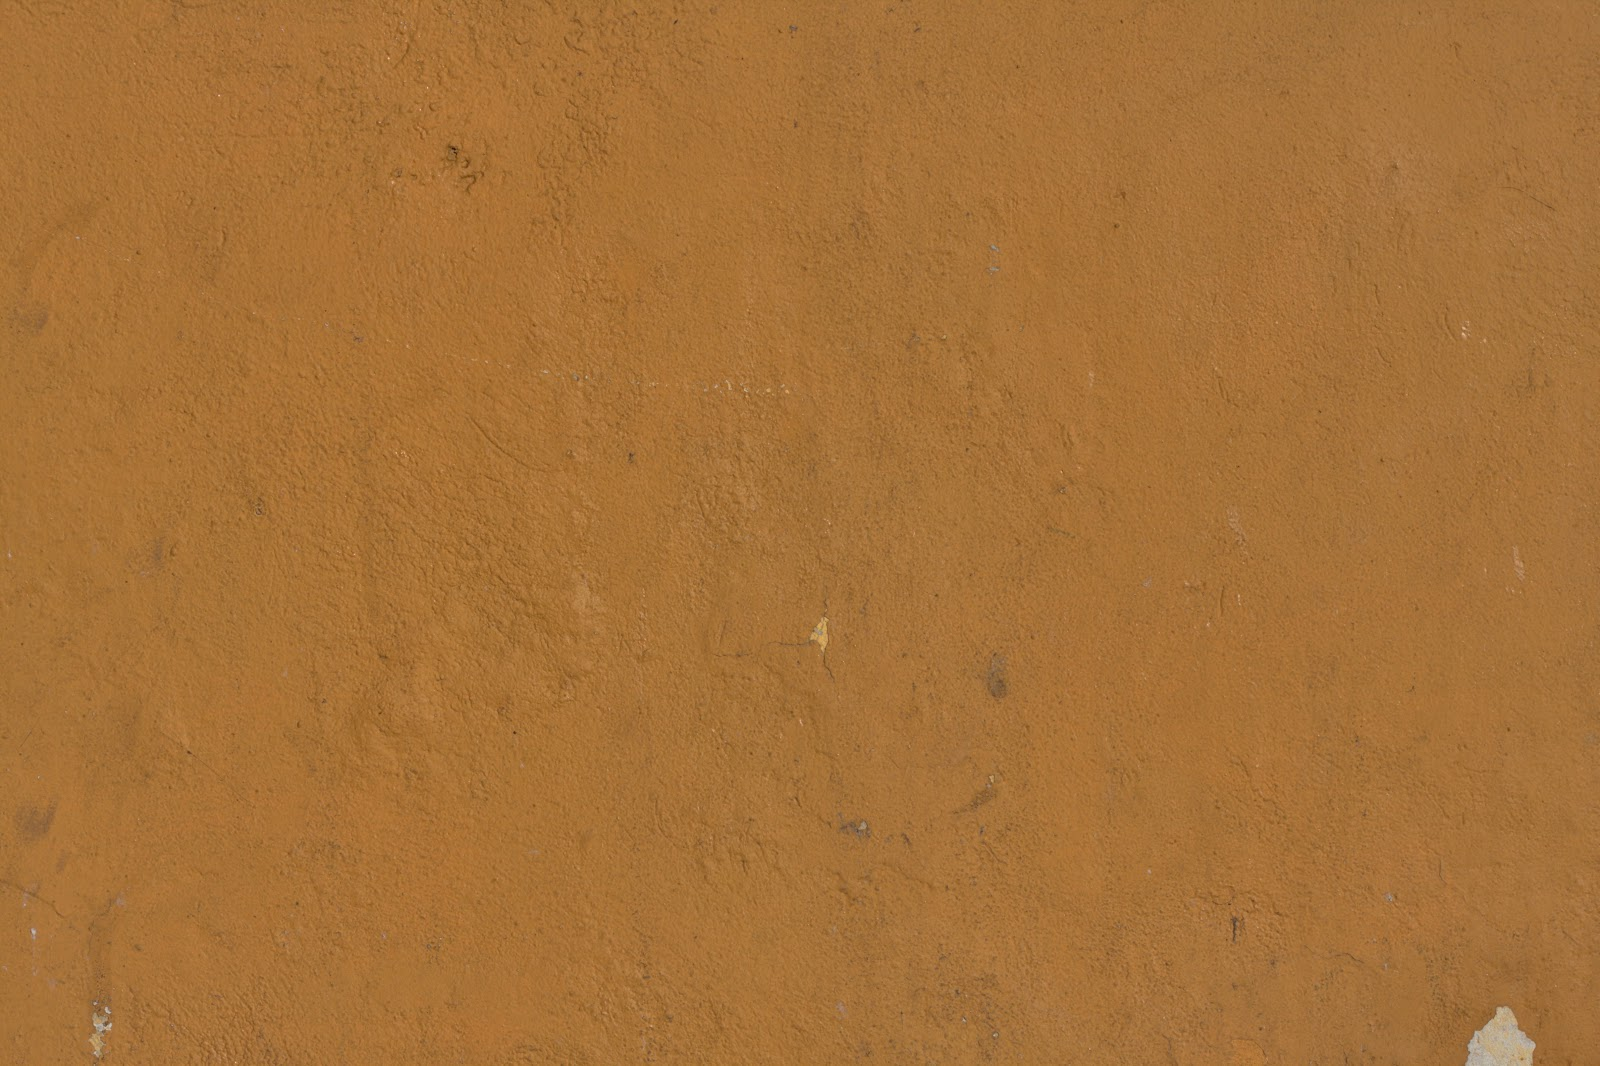 Wall stucco orange dirt texture 4770x3178 resolutuion